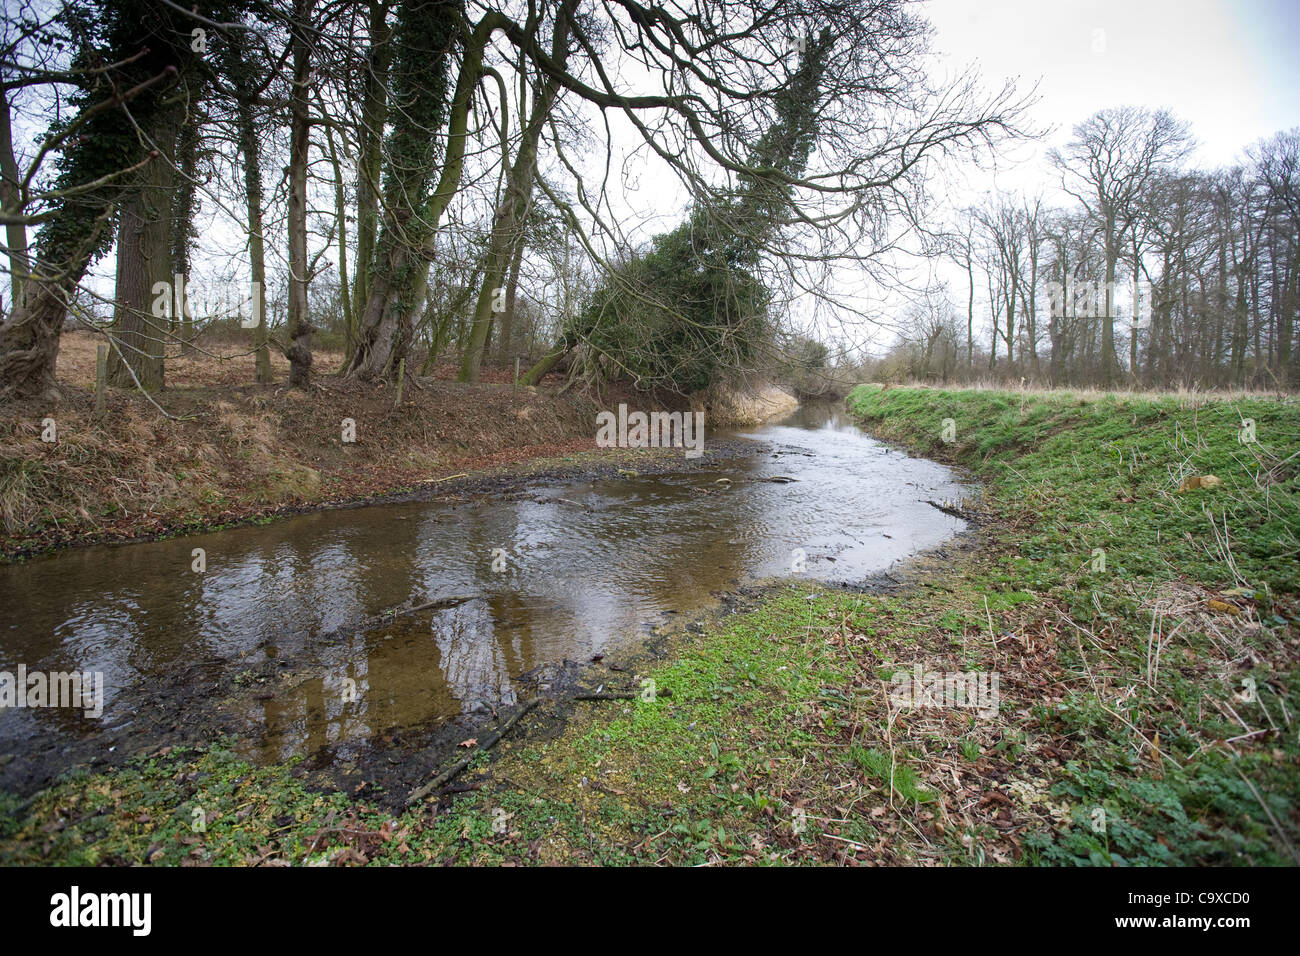 The River Glen in South Lincolnshire showing low water levels due to the drought. 29 Feb, 2012. Stock Photo